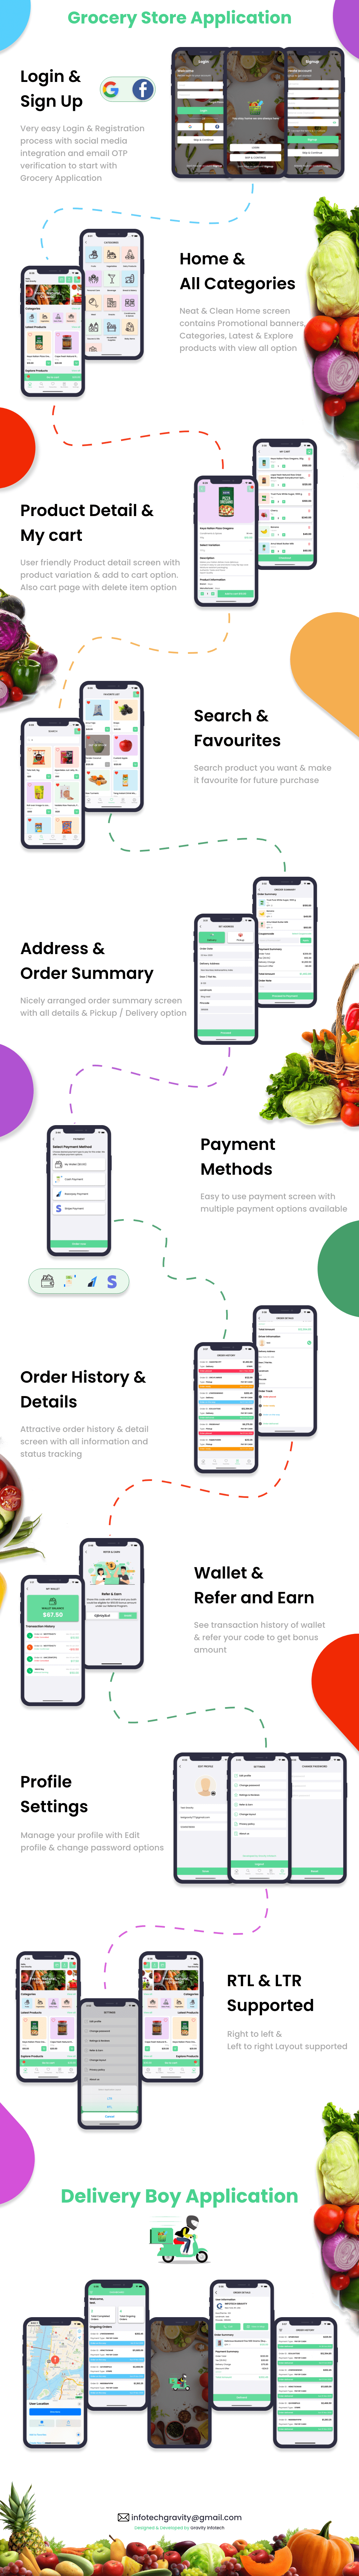 Grocery | Single Grocery Store iOS User & Delivery Boy App With Admin Panel - 9